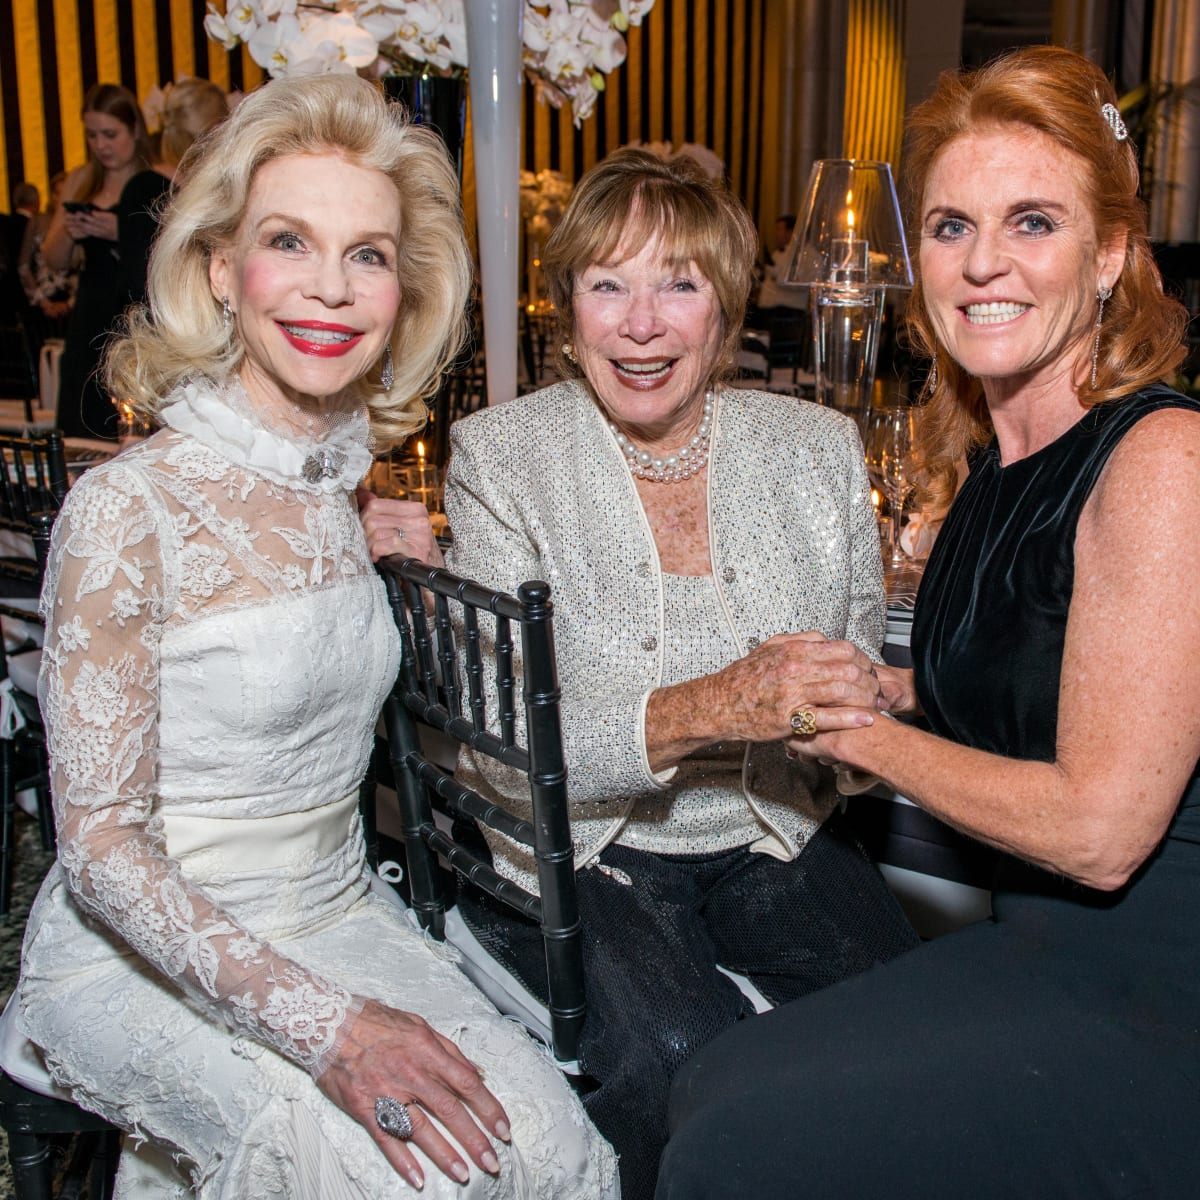 News, Shelby, Museum of Fine Arts gala, Oct. 2015, Lynn Wyatt, Shirley McClain, Duchess of York